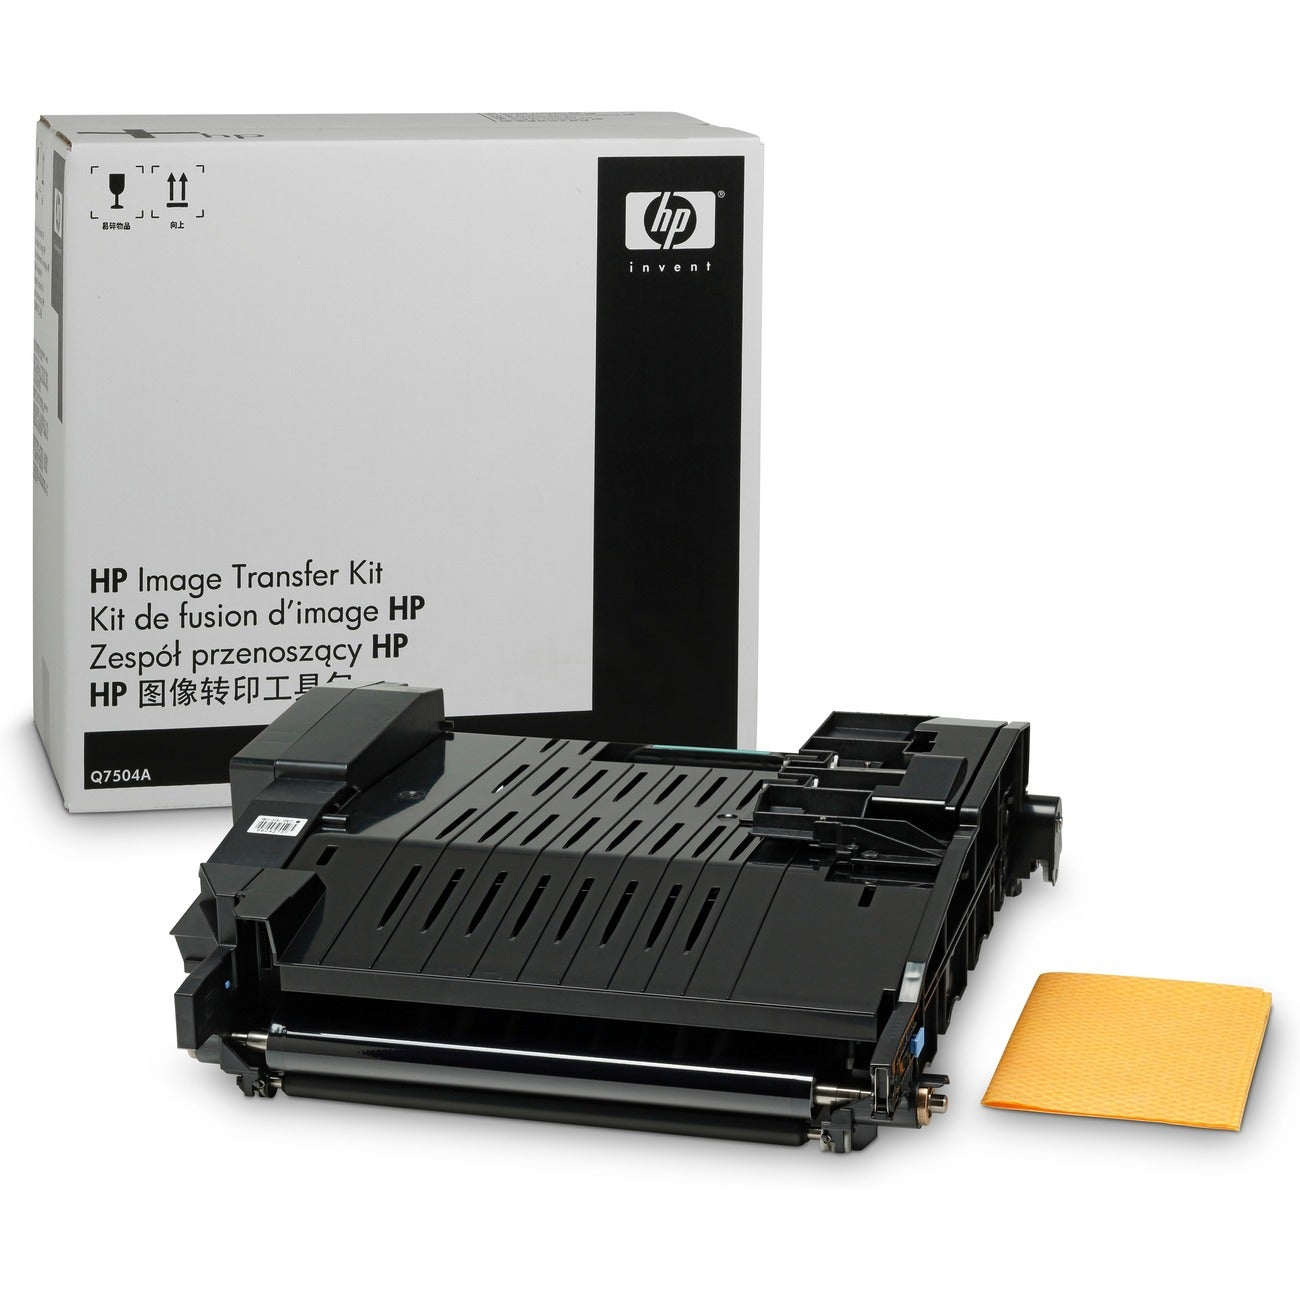 HP Image Transfer Kit For Colour LaserJet 4700 Printer